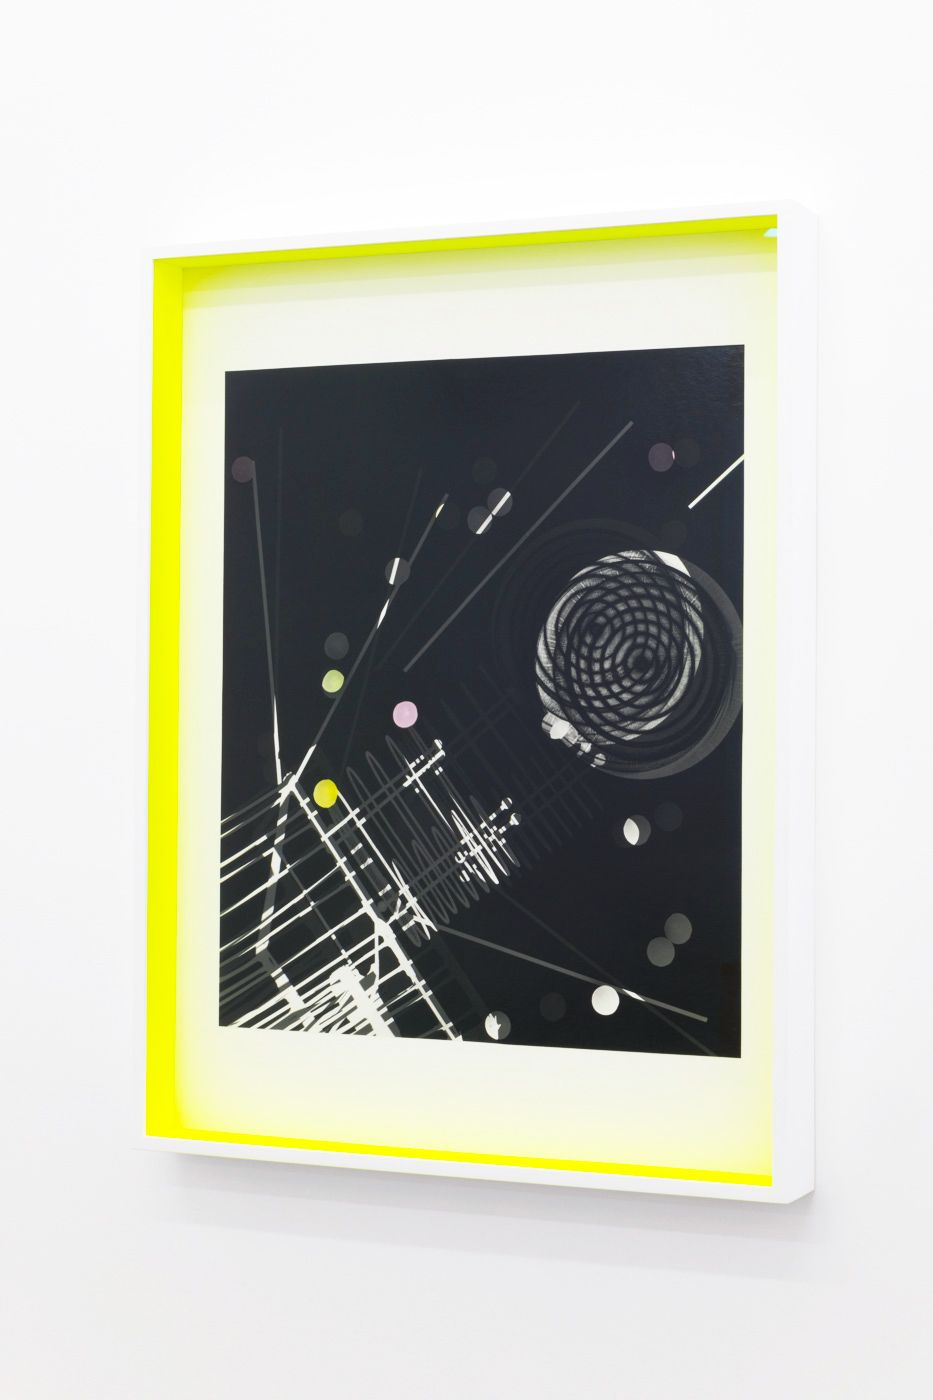 JANET JONES | SPACE JUNK #4| PHOTOGRAM-SILVER / HAND TINTED | 24.5X 32.5INCHES | 2017,